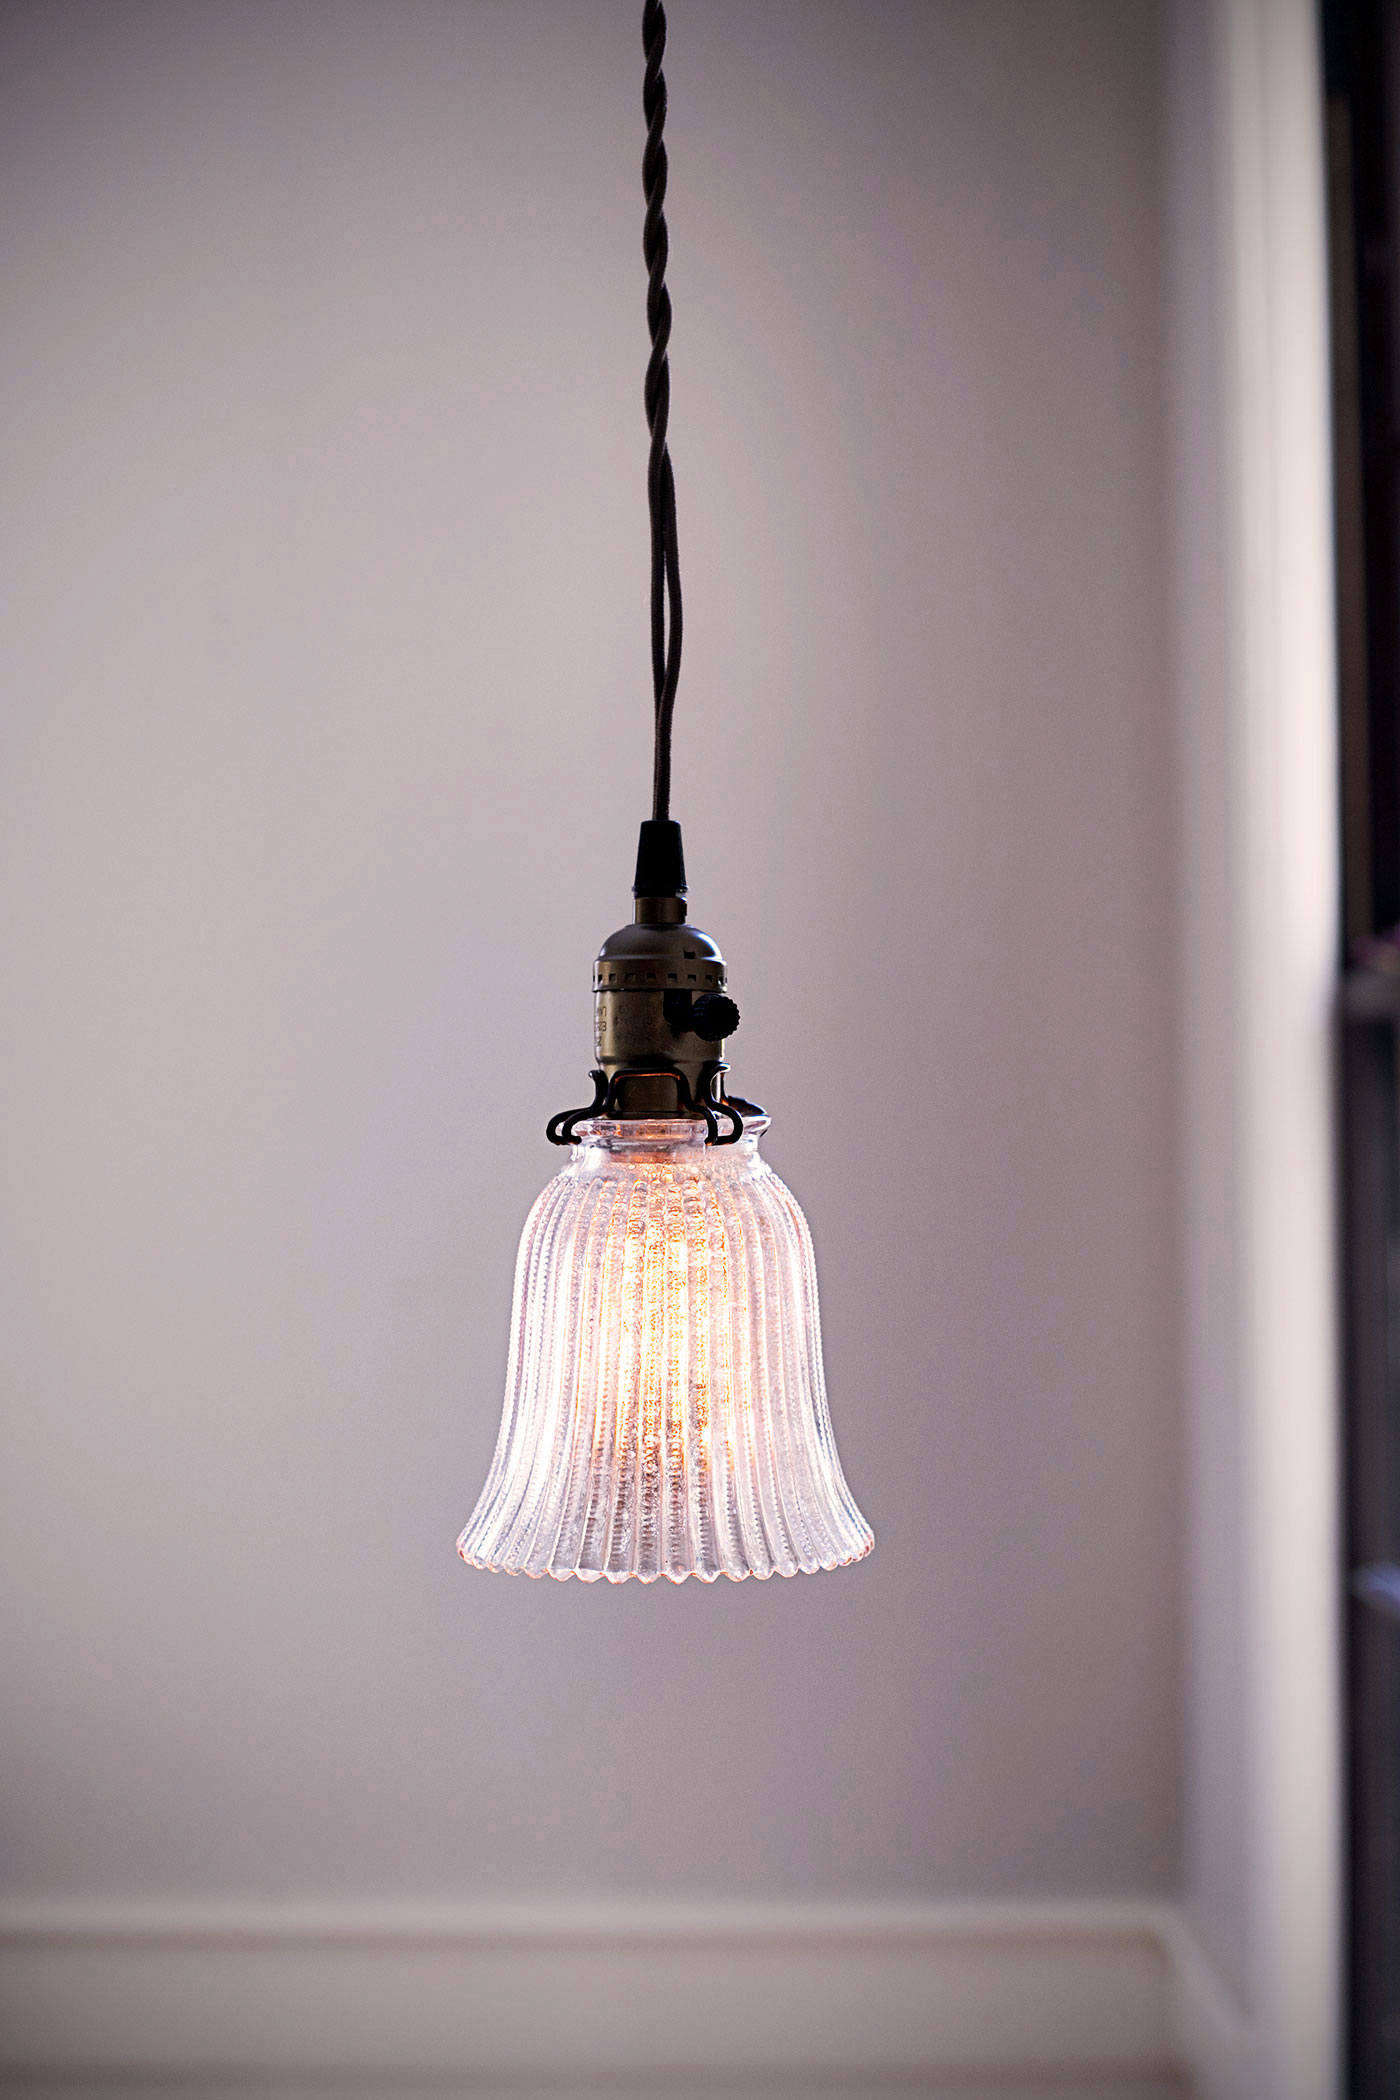 How To Make A Vintage Looking Mercury Glass Pendant Lights For 25 Diy On Remodelista